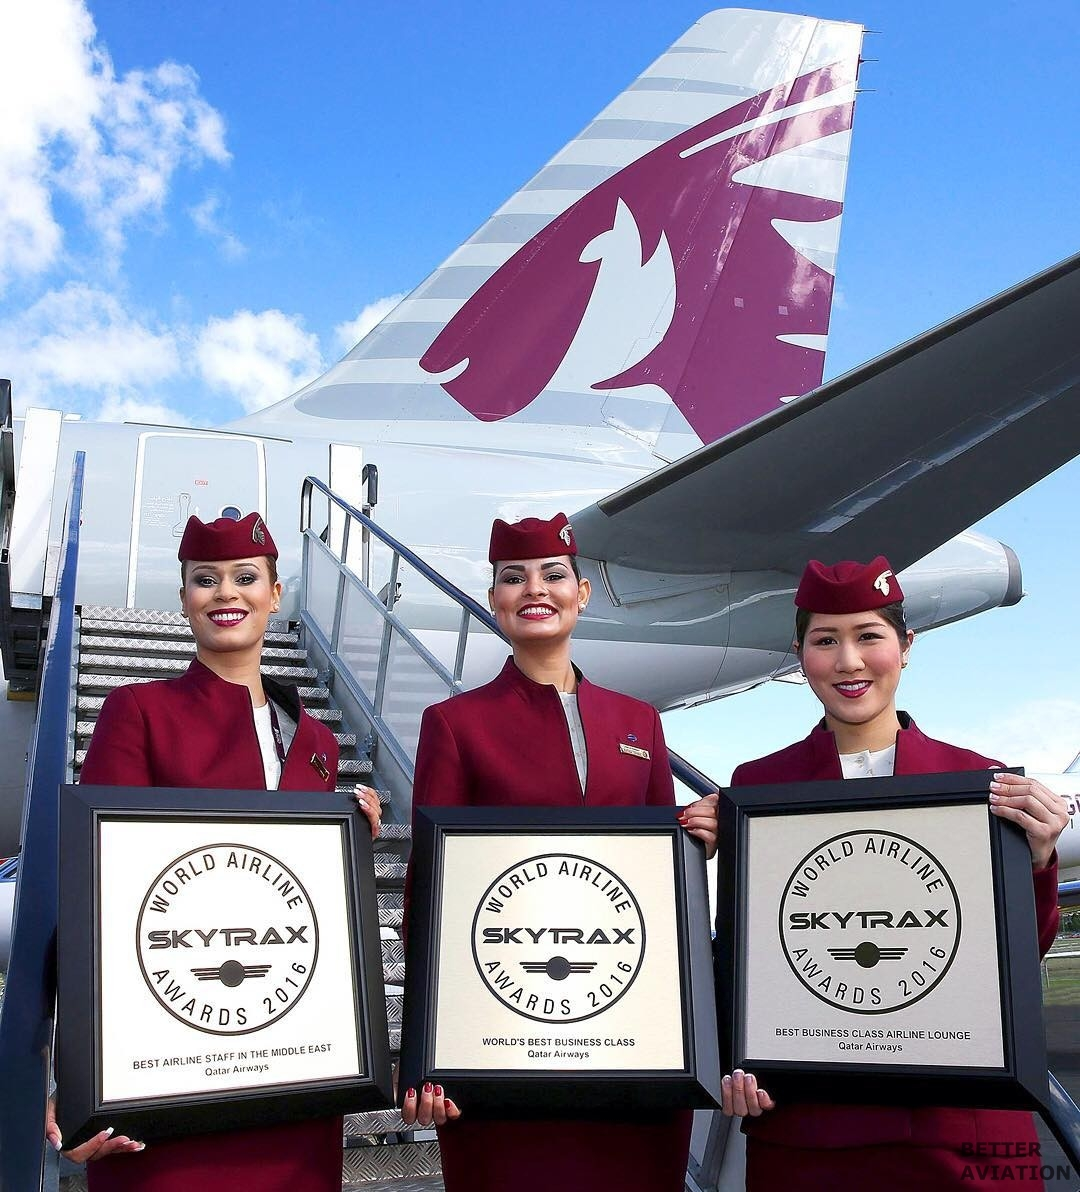 Qatar airways cabin crew recruitment event singapore september 2018 better aviation - Qatar airways paris office ...